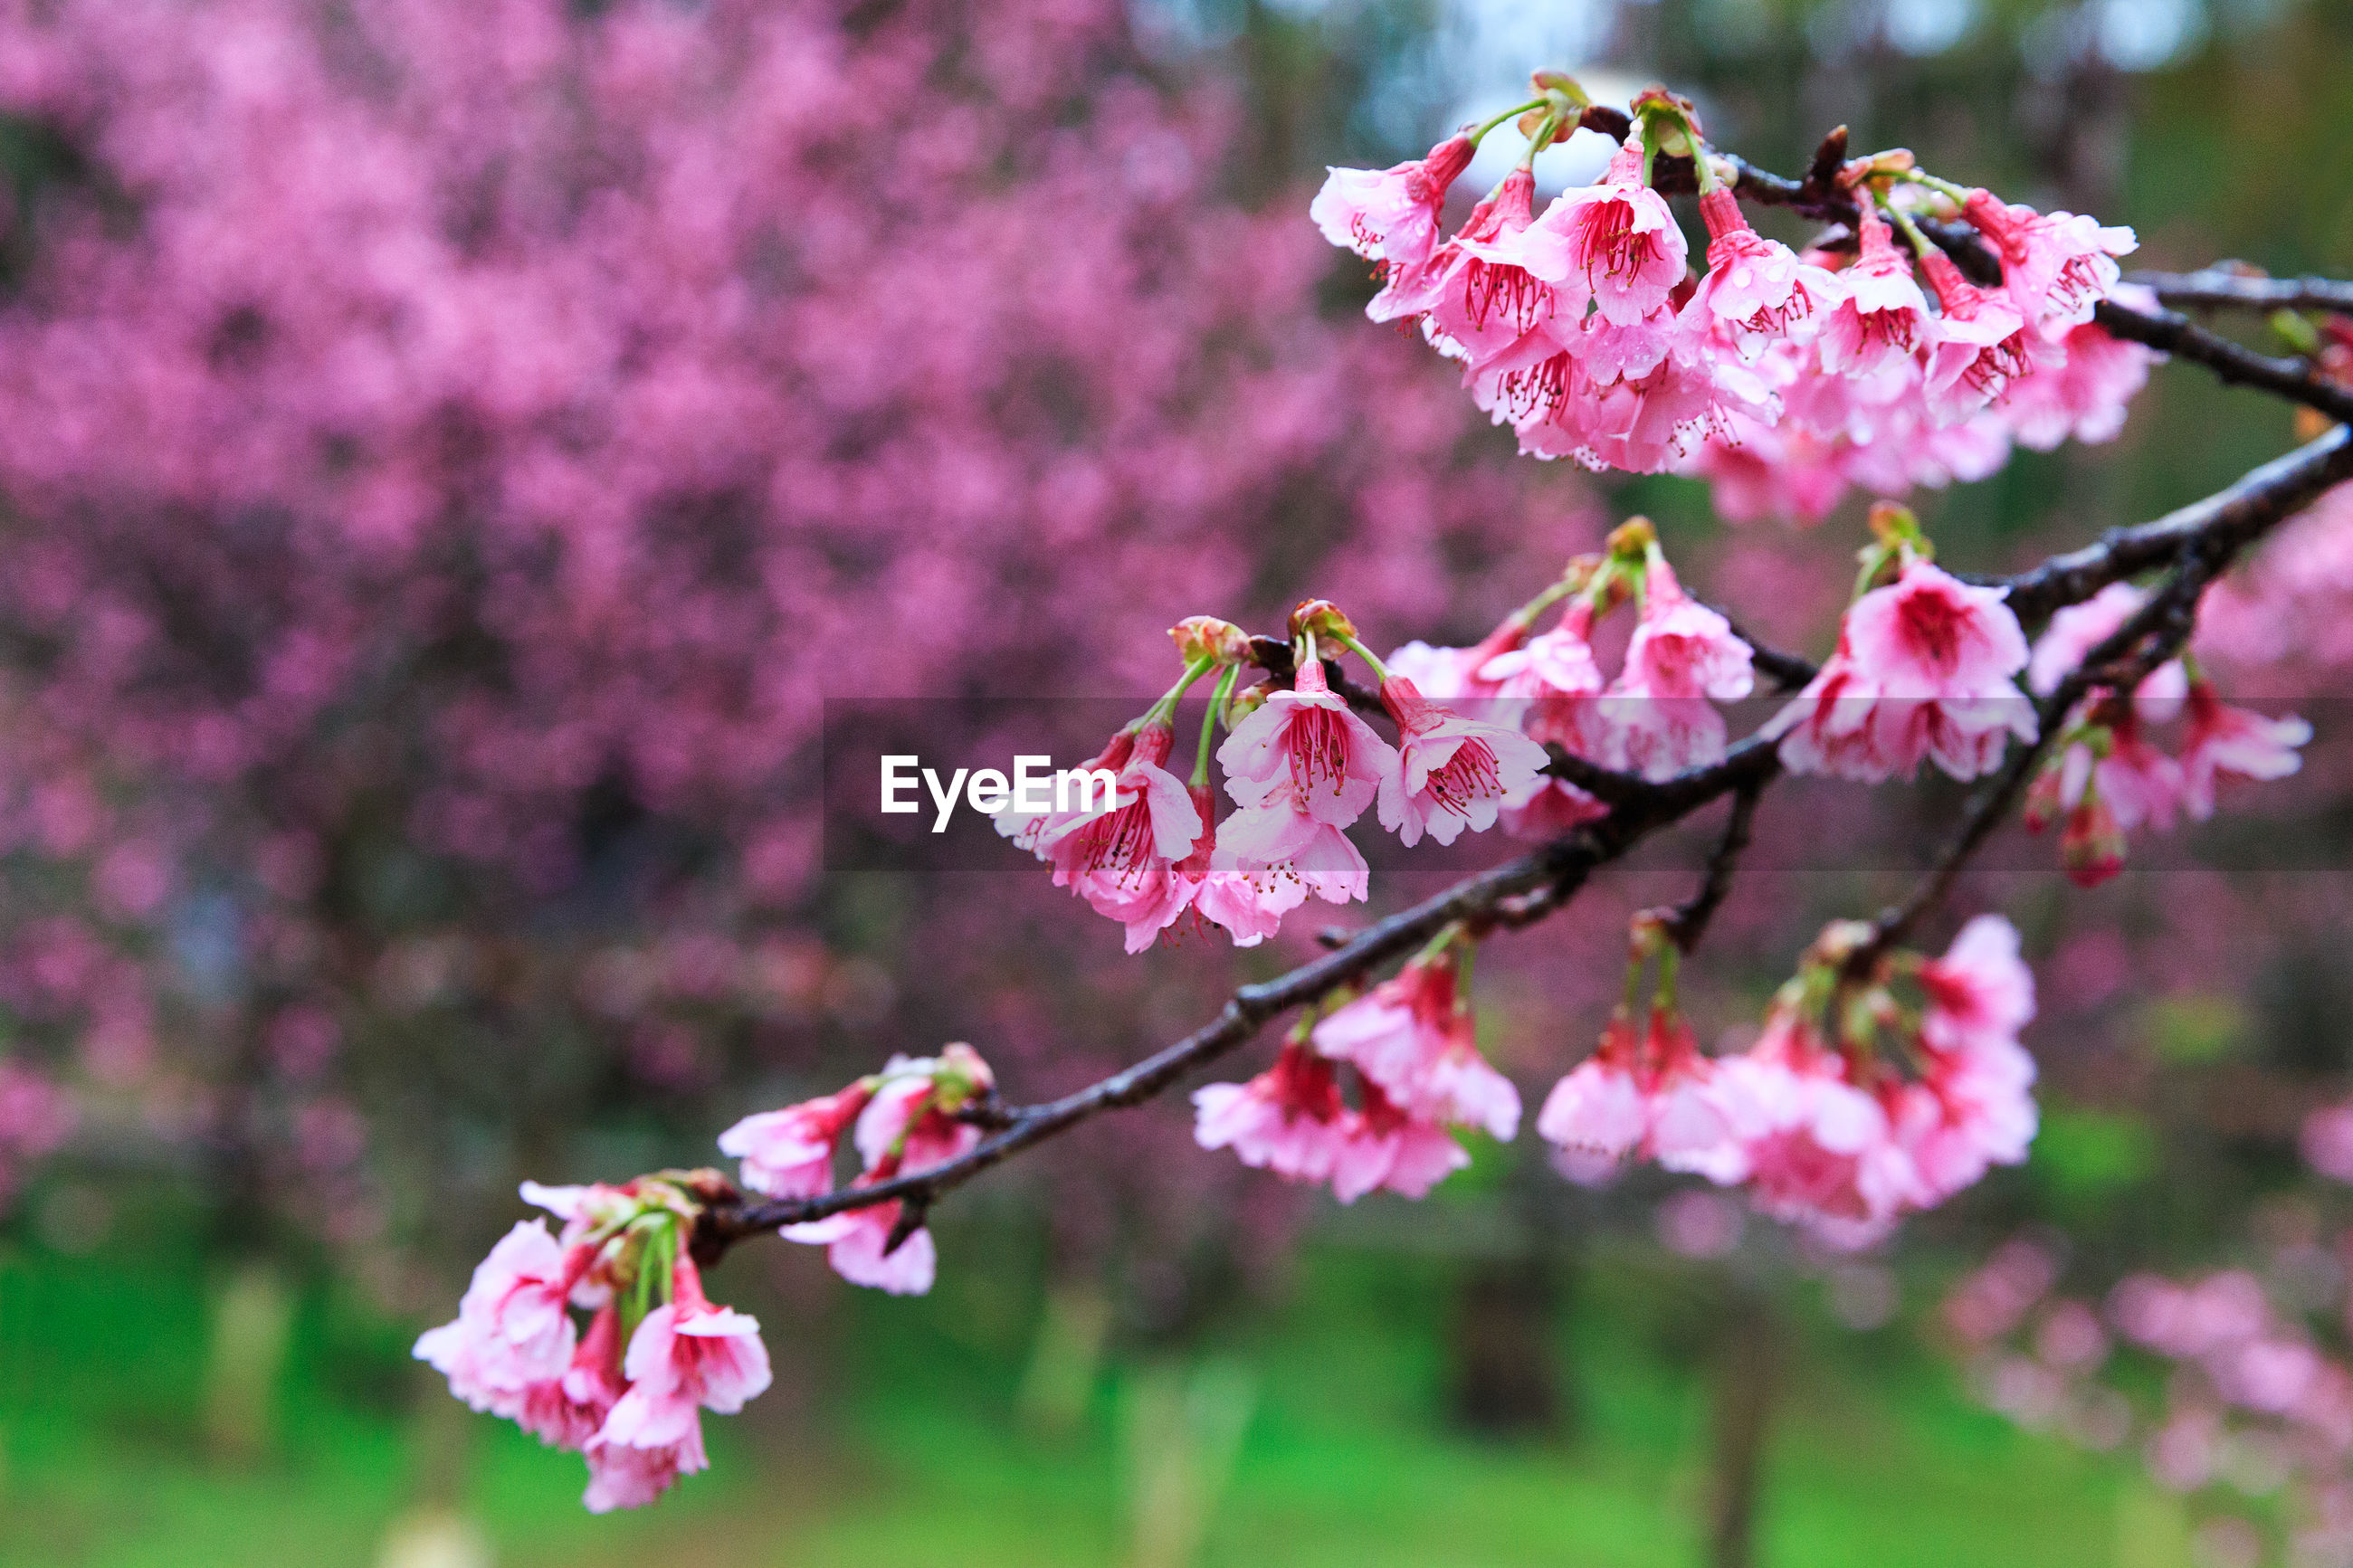 CLOSE-UP OF PINK FLOWERS BLOOMING IN TREE